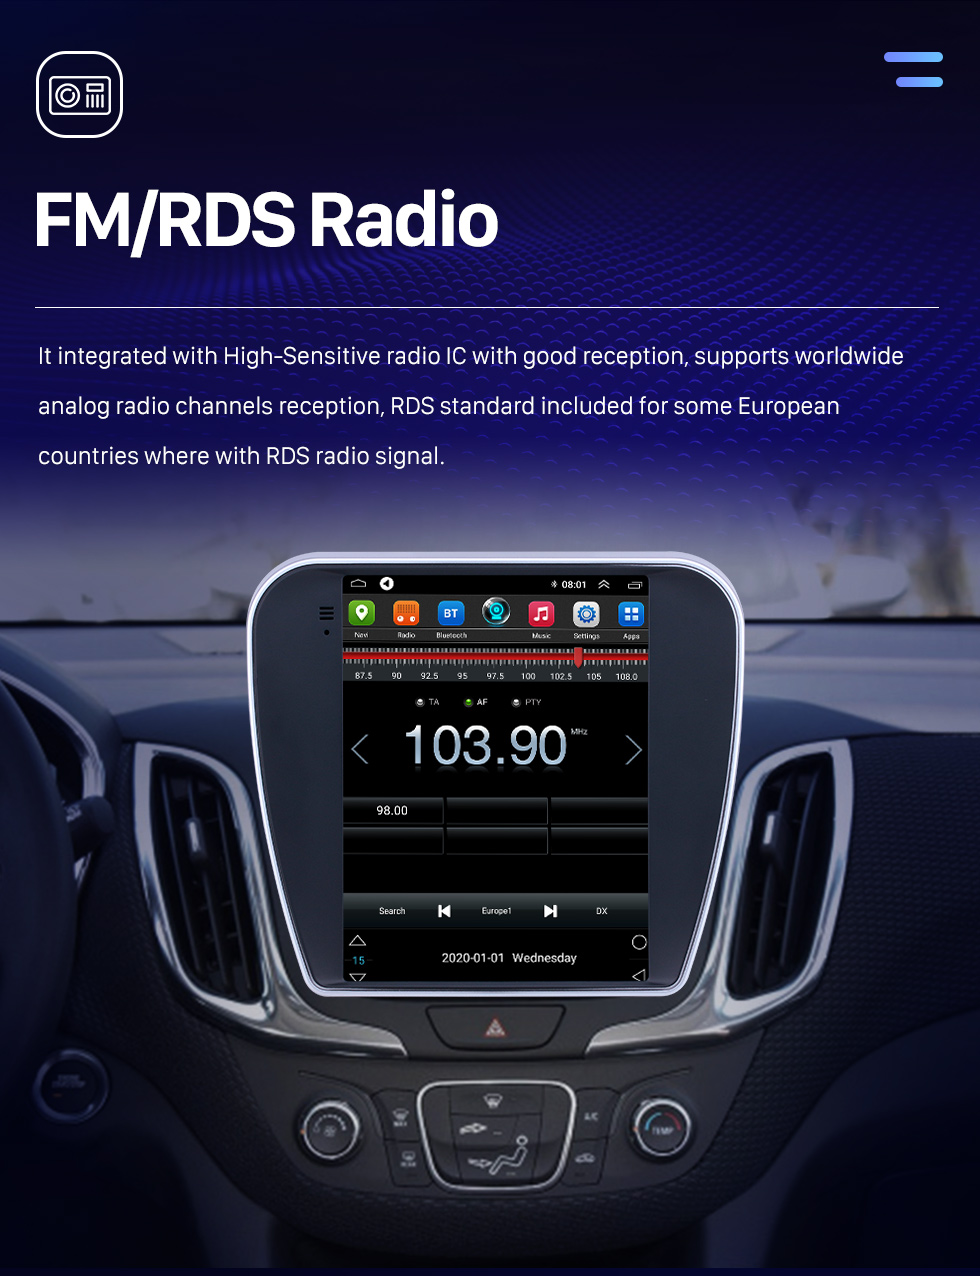 Seicane Android 9.1 9.7 pouces Radio de navigation GPS pour 2017 Chevrolet Equinox de Chevrolet avec HD écran tactile Bluetooth support Carplay DVR OBD2